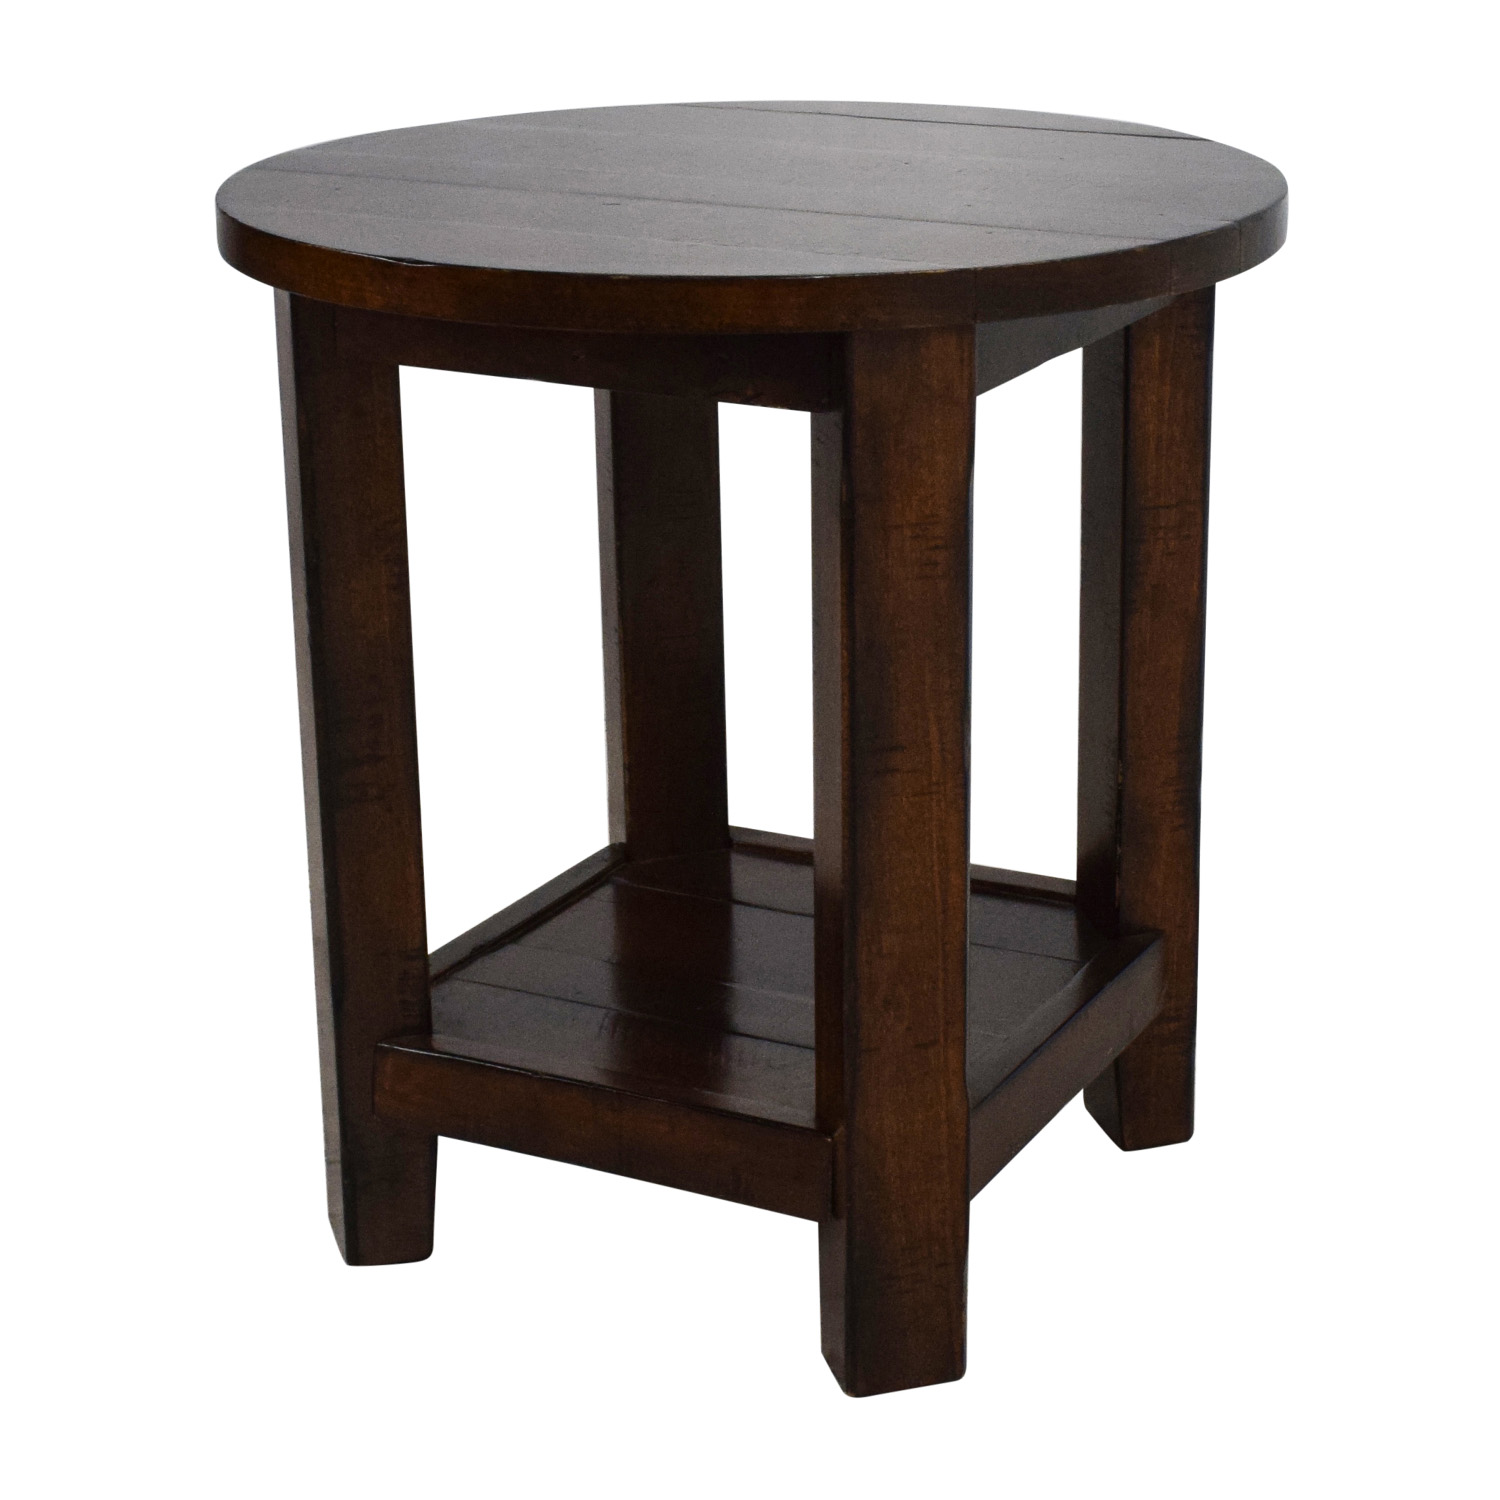 nolan large pedestal table pottery barn chairside tables with storage off wooden side zane accent small coffee legs ikea cube square end high lamps for living room wicker patio